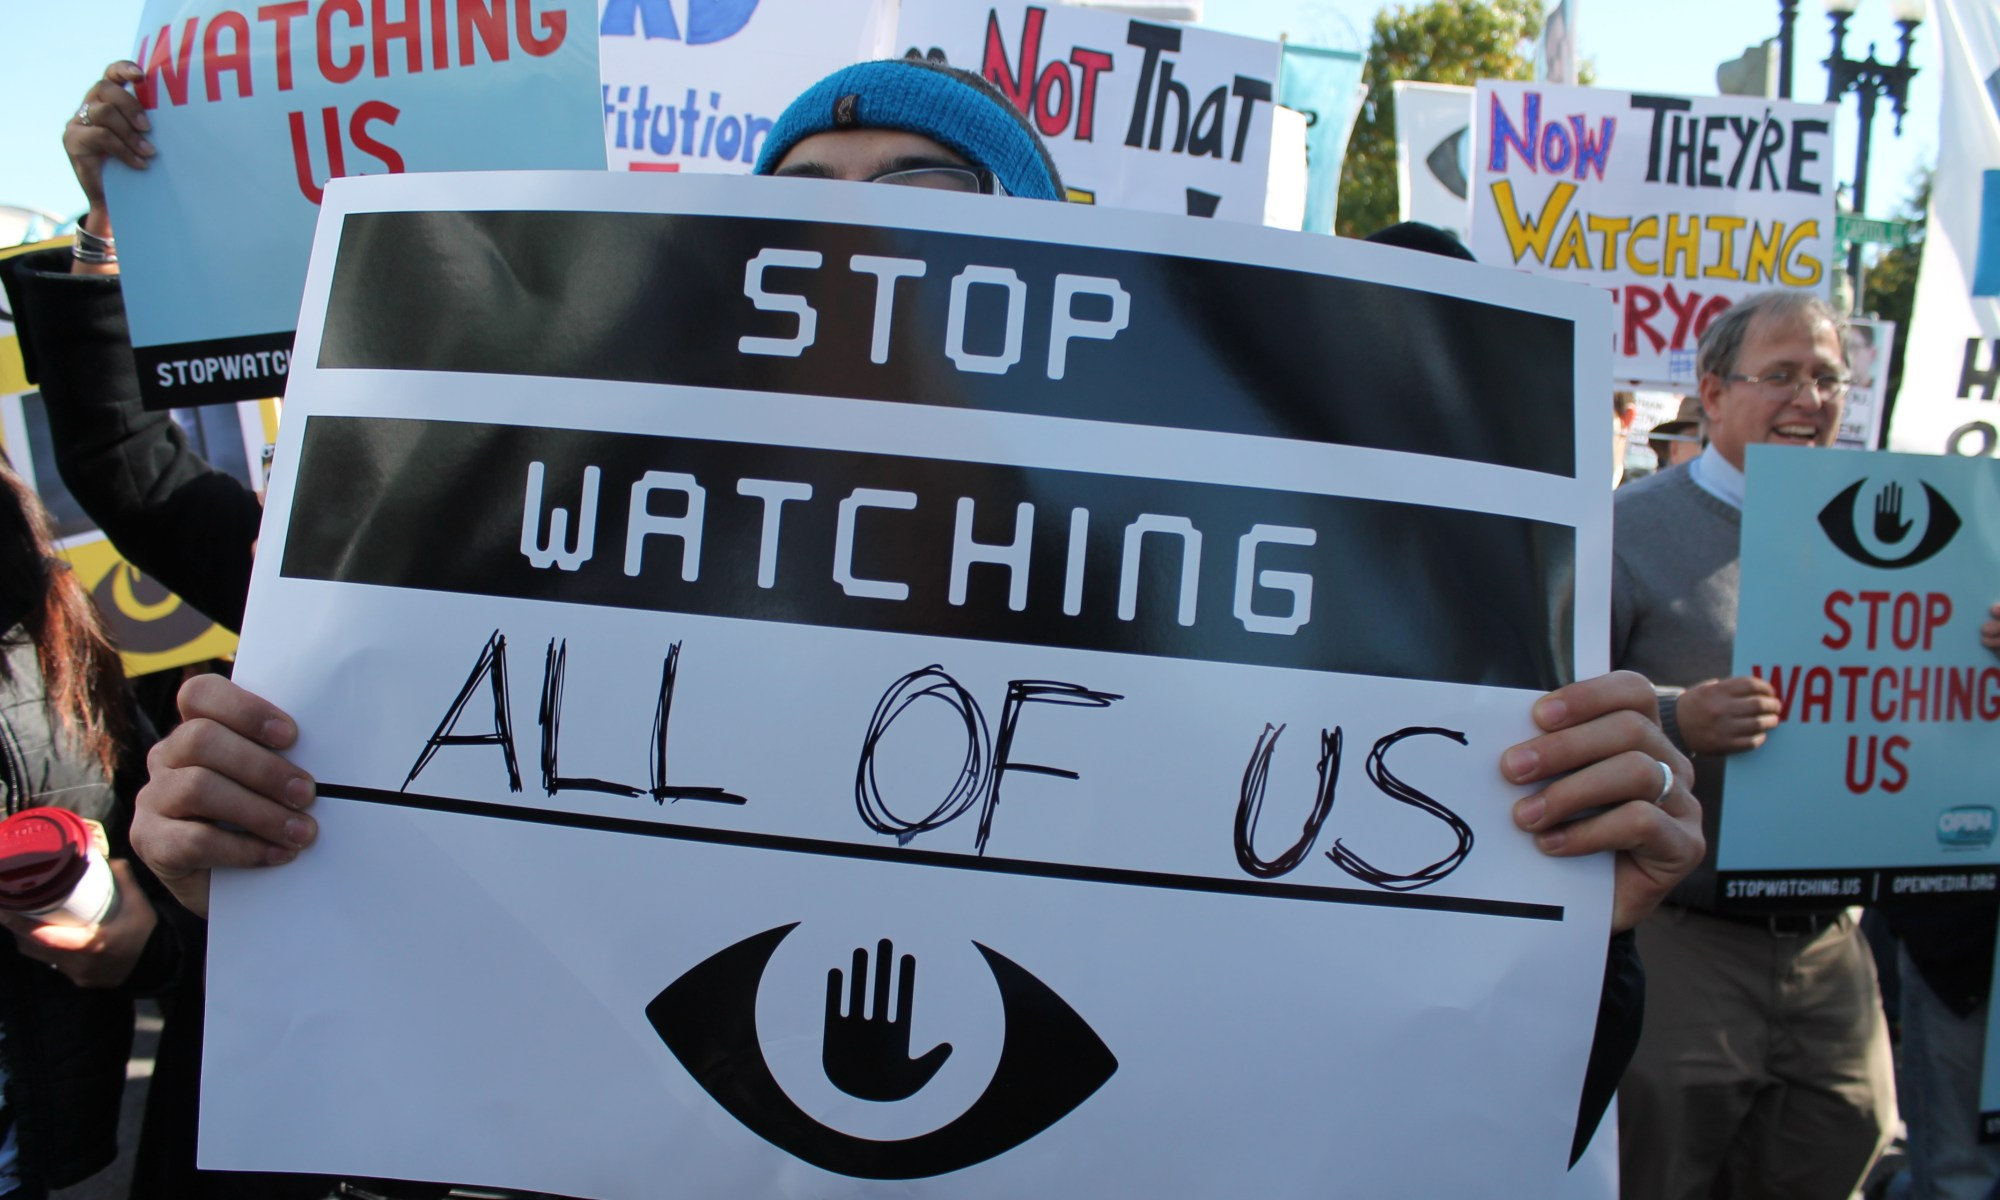 Surveillance in a totalitarian state